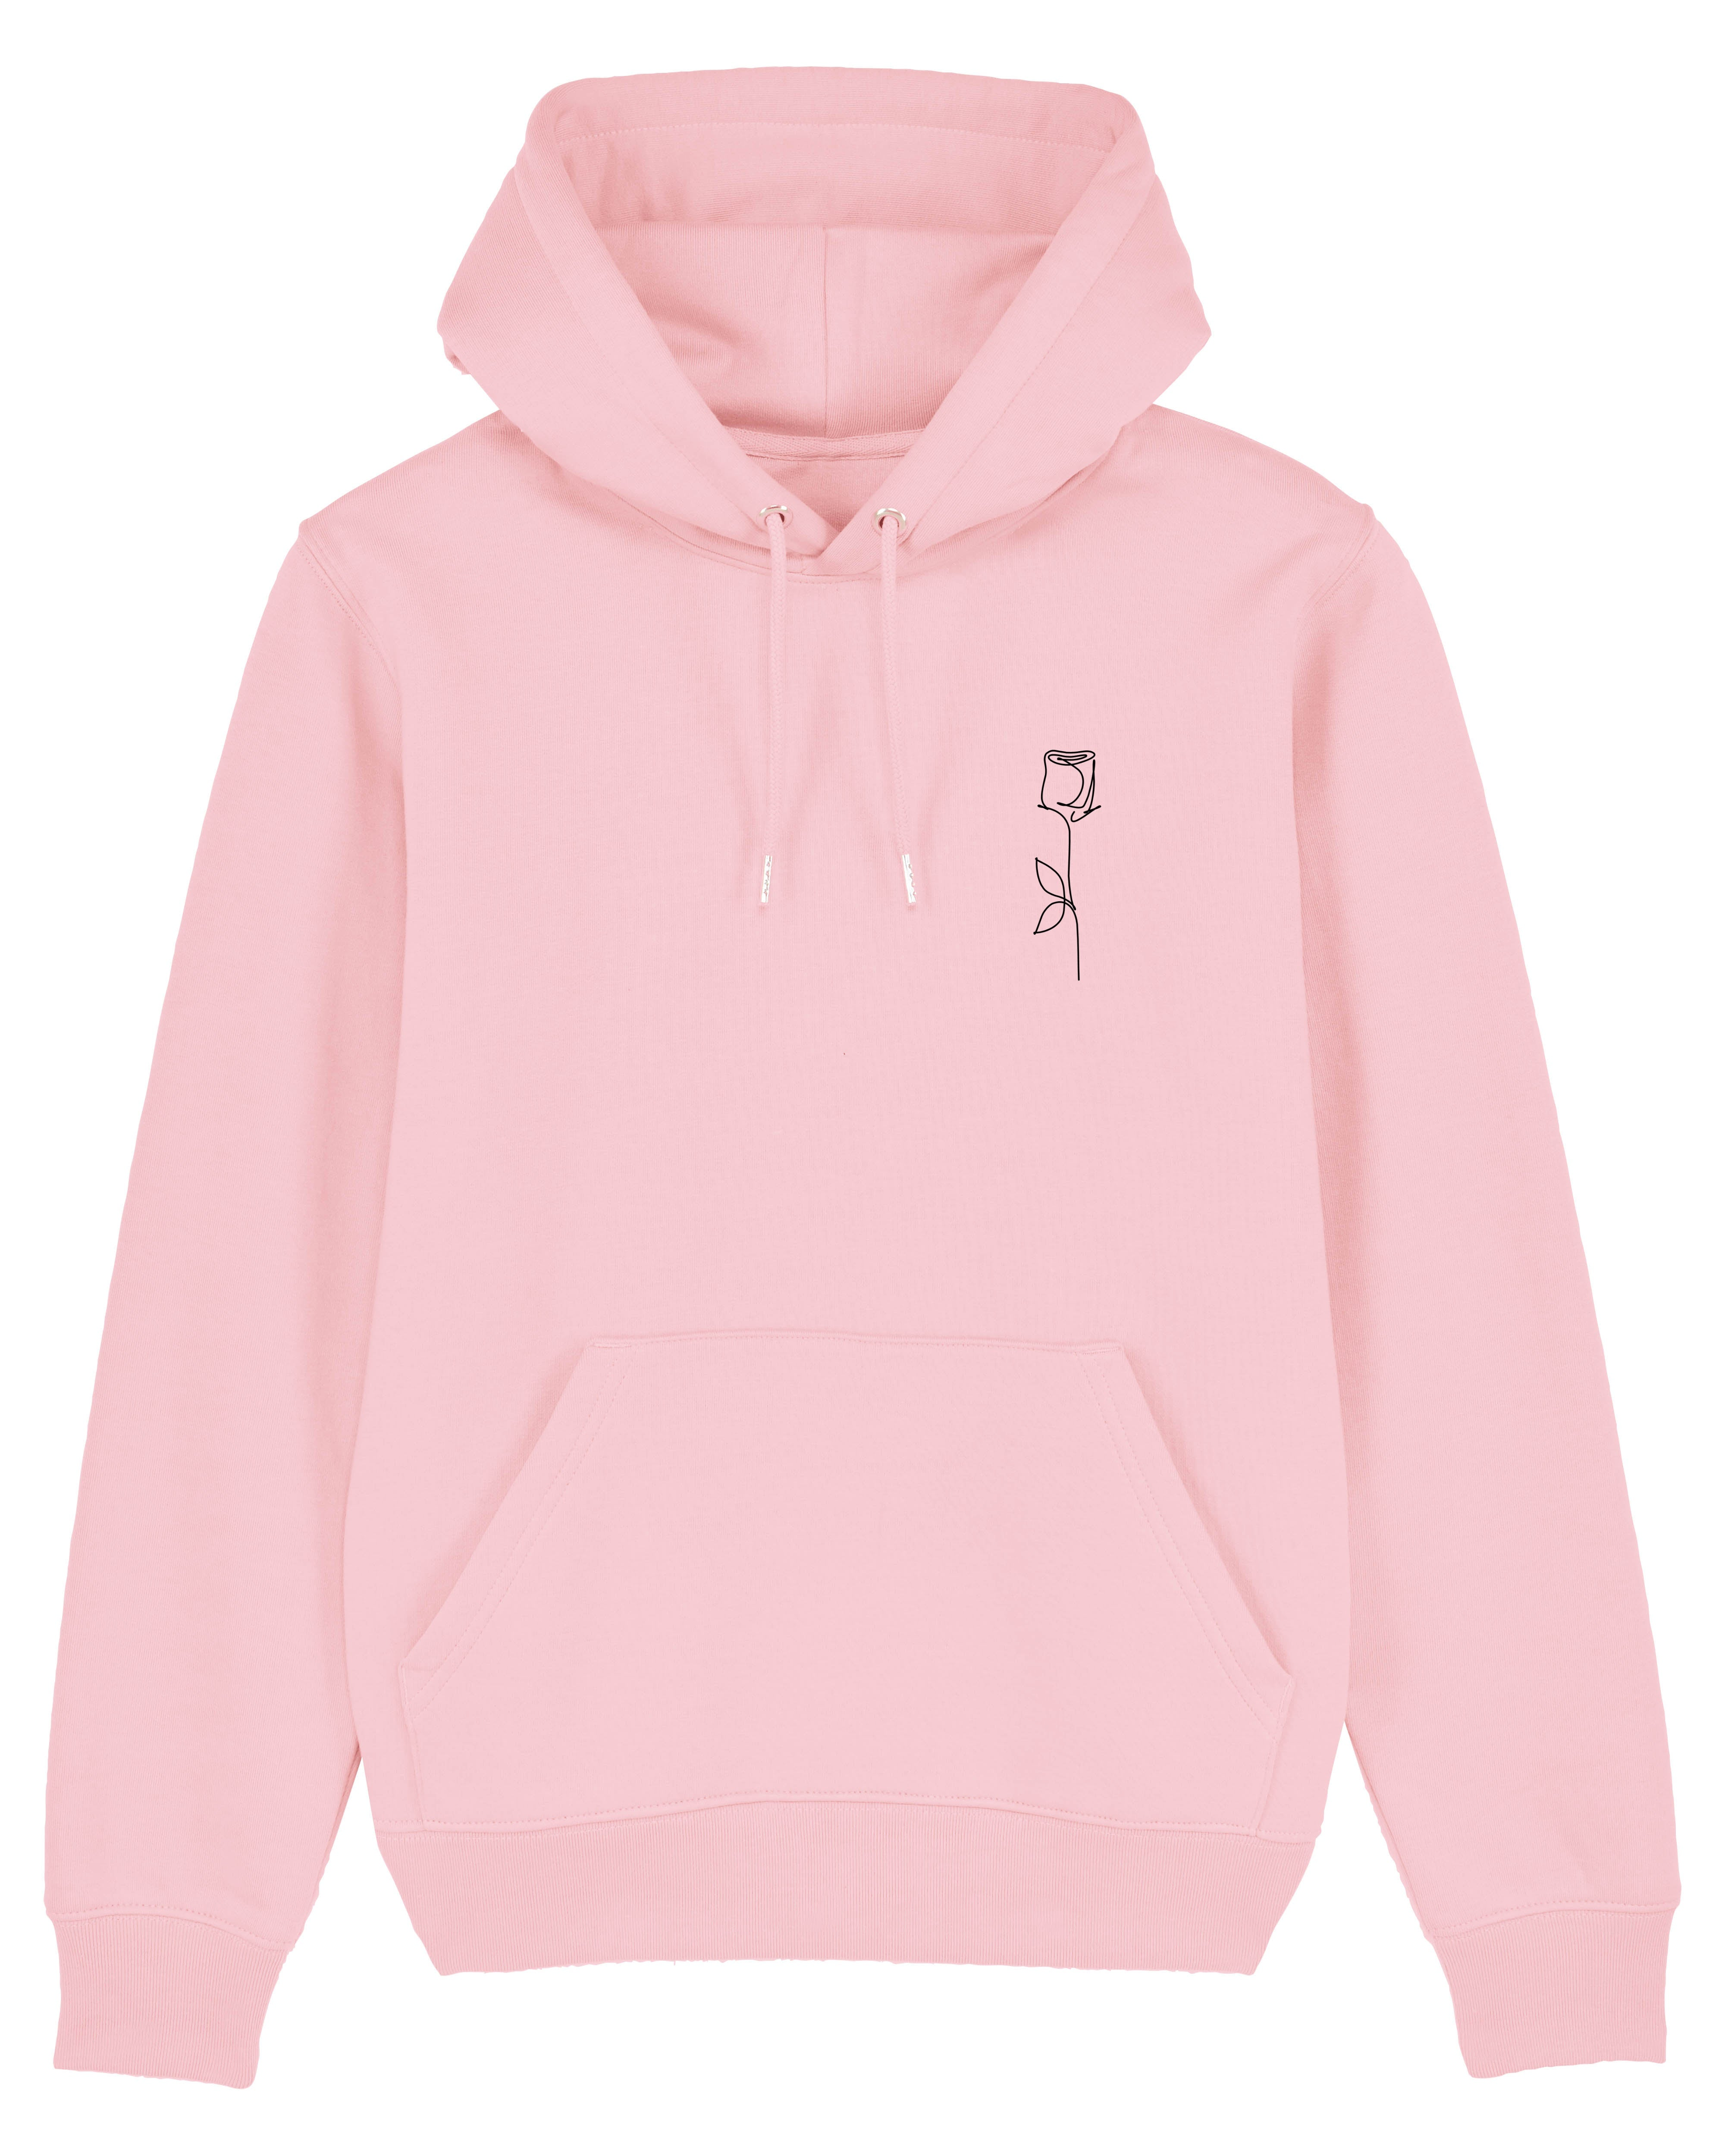 Hoodie passion (4 couleurs)